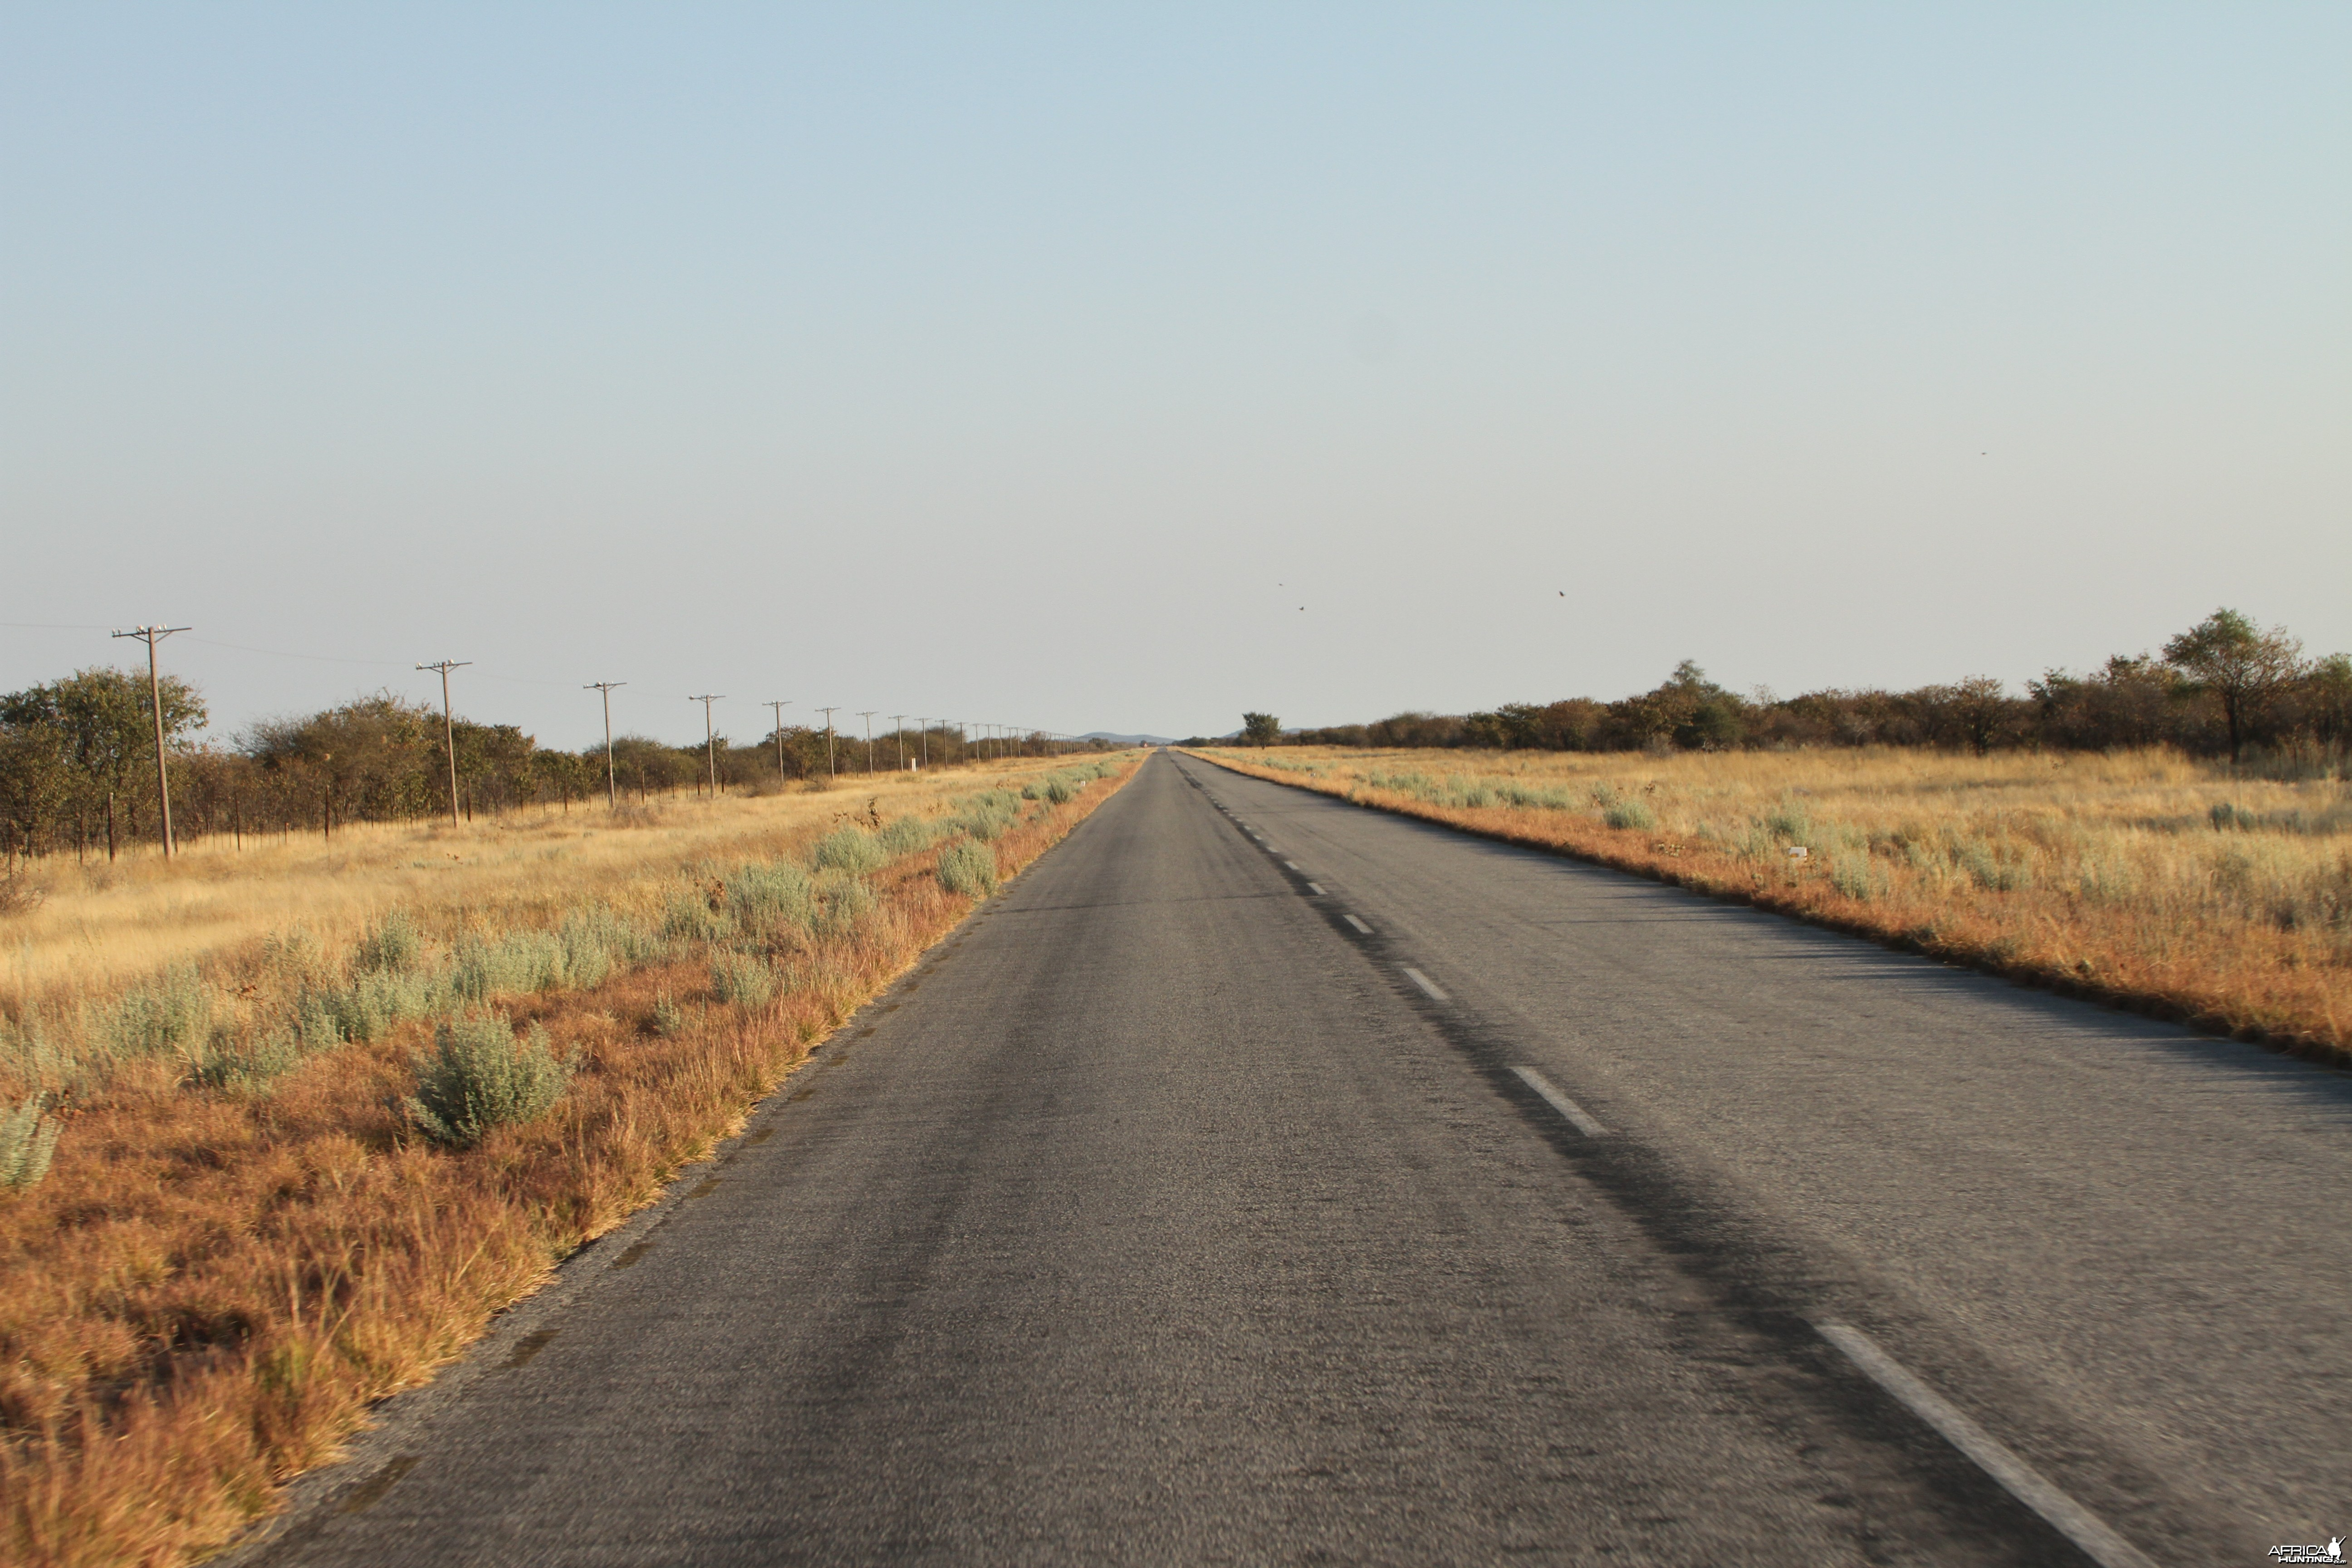 Road to Etosha National Park